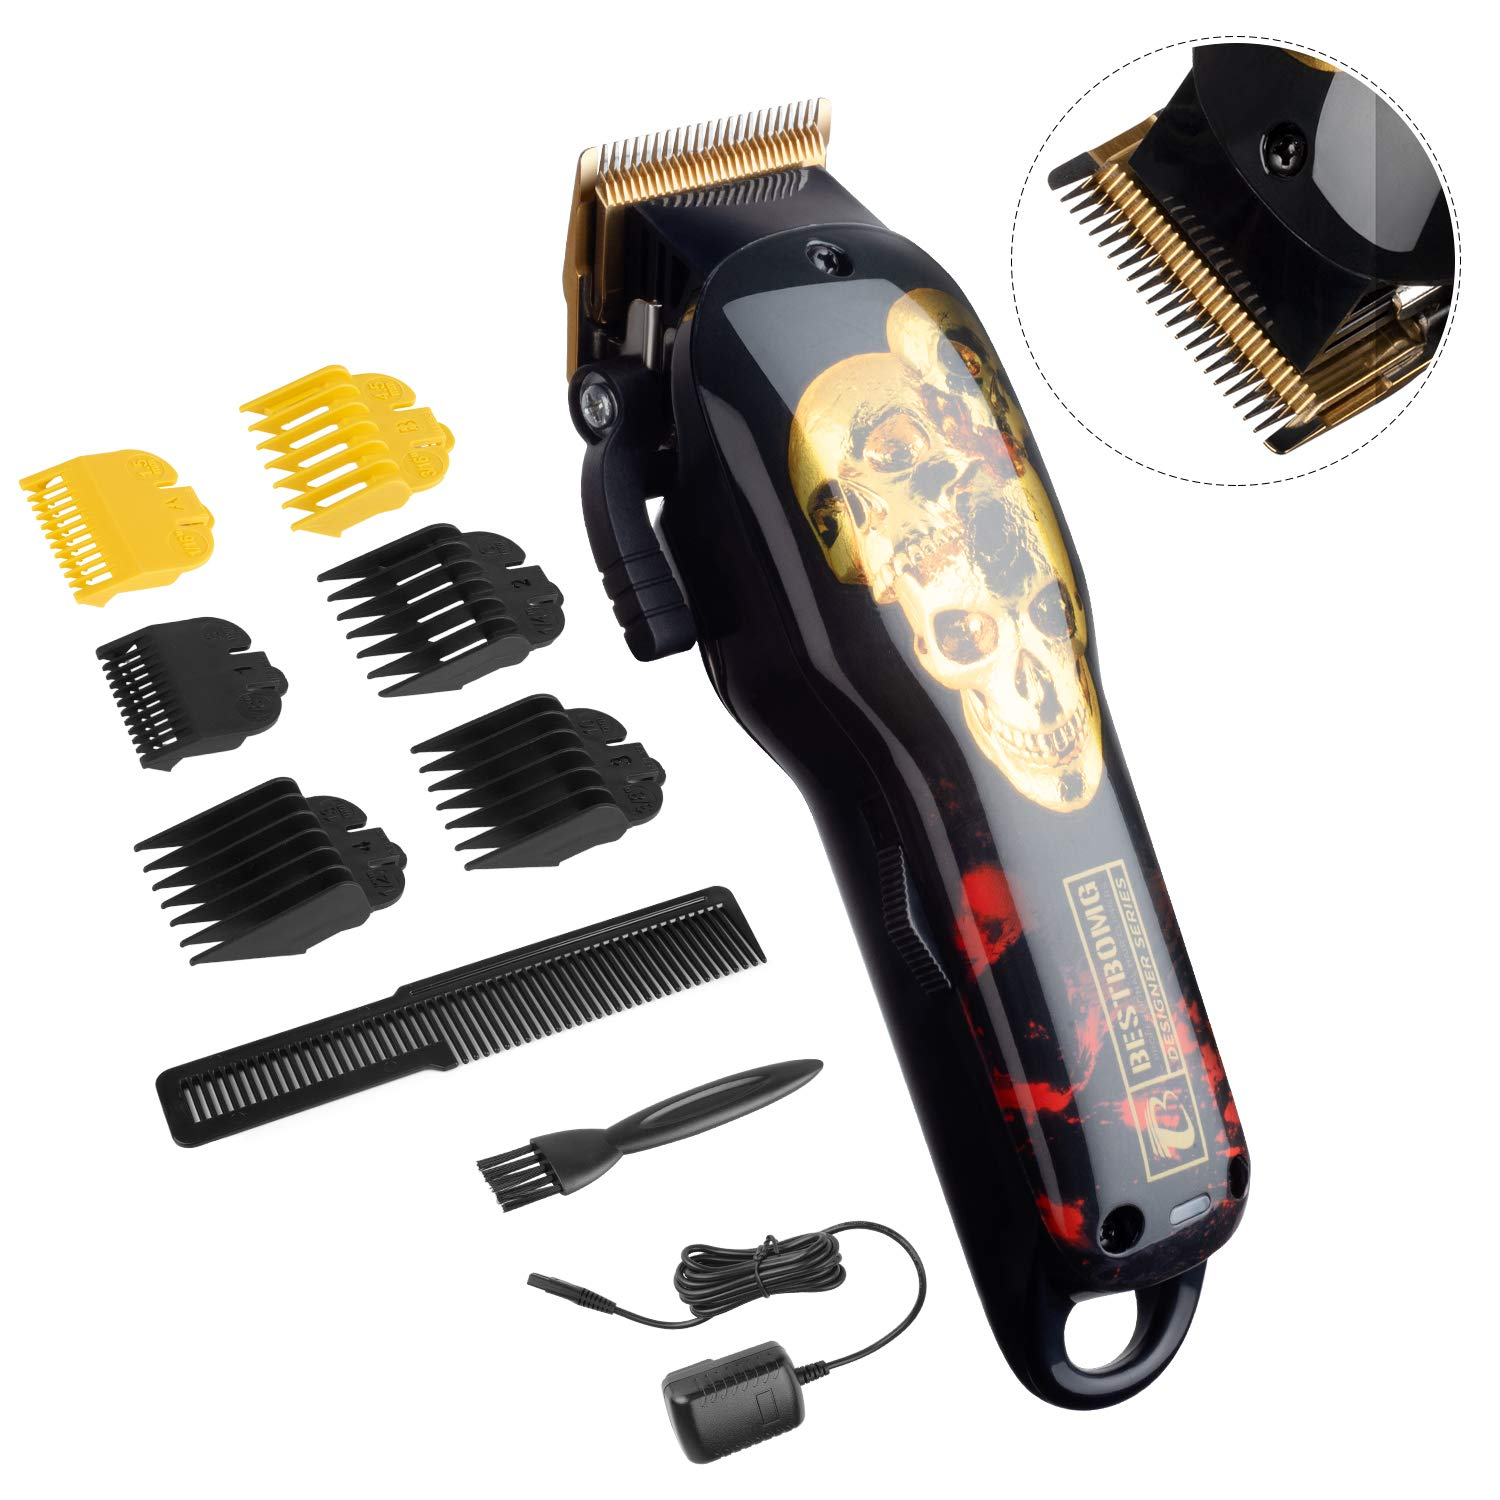 Cordless Hair Trimmer Professional Hair Clippers Beard Trimmer for Men Haircut Kit USB Rechargeable Barber Electric Shavers Hair Removal with 2000mAh Lithium Ion,6pcs Guide Combs by BESTBOMG